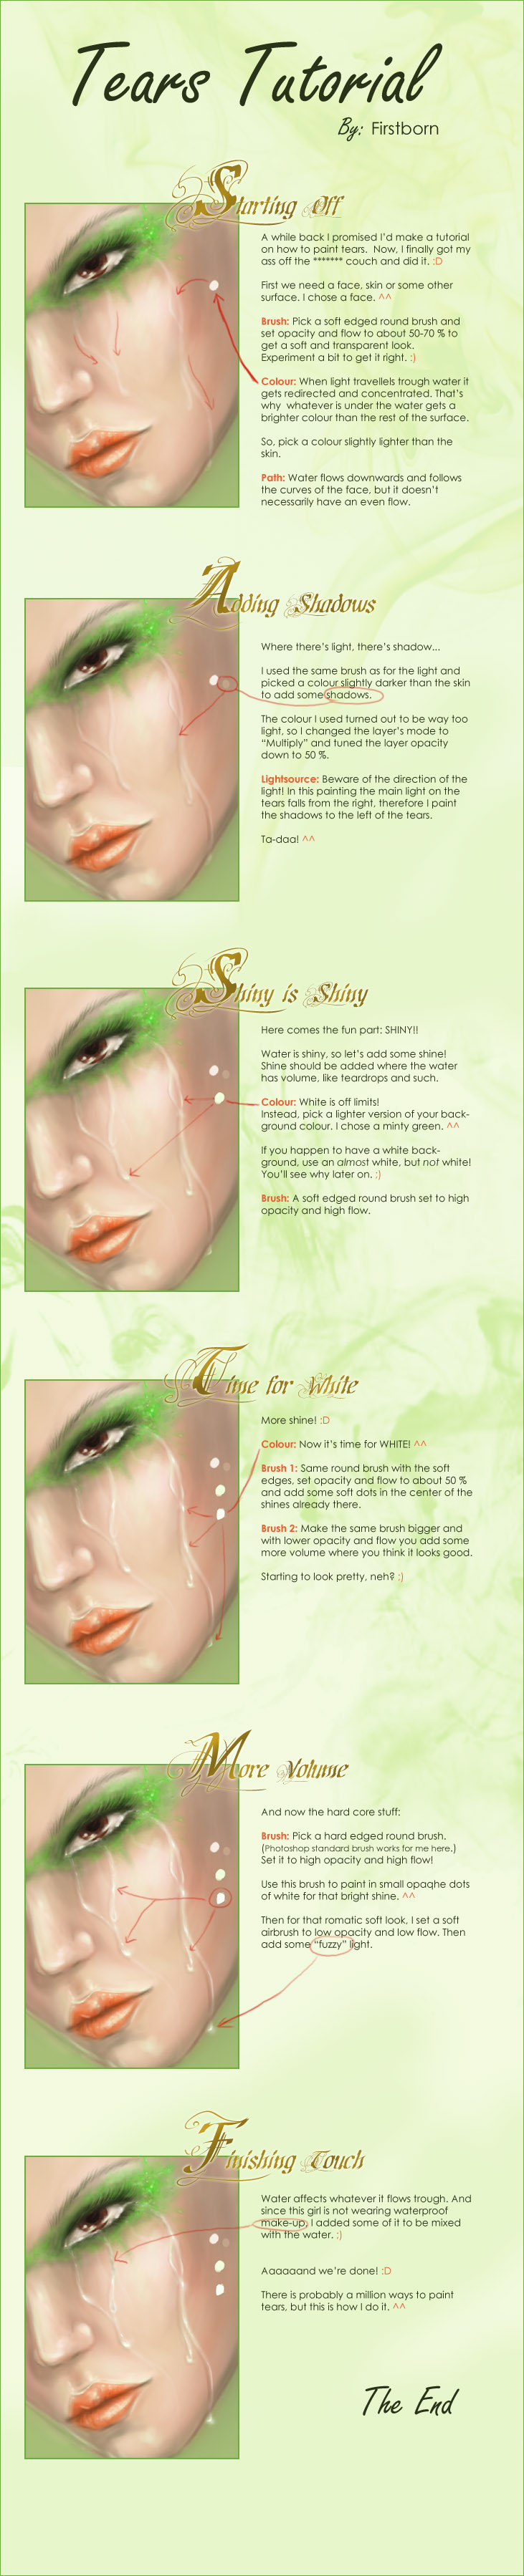 Tears Tutorial By Firstborn On DeviantArt